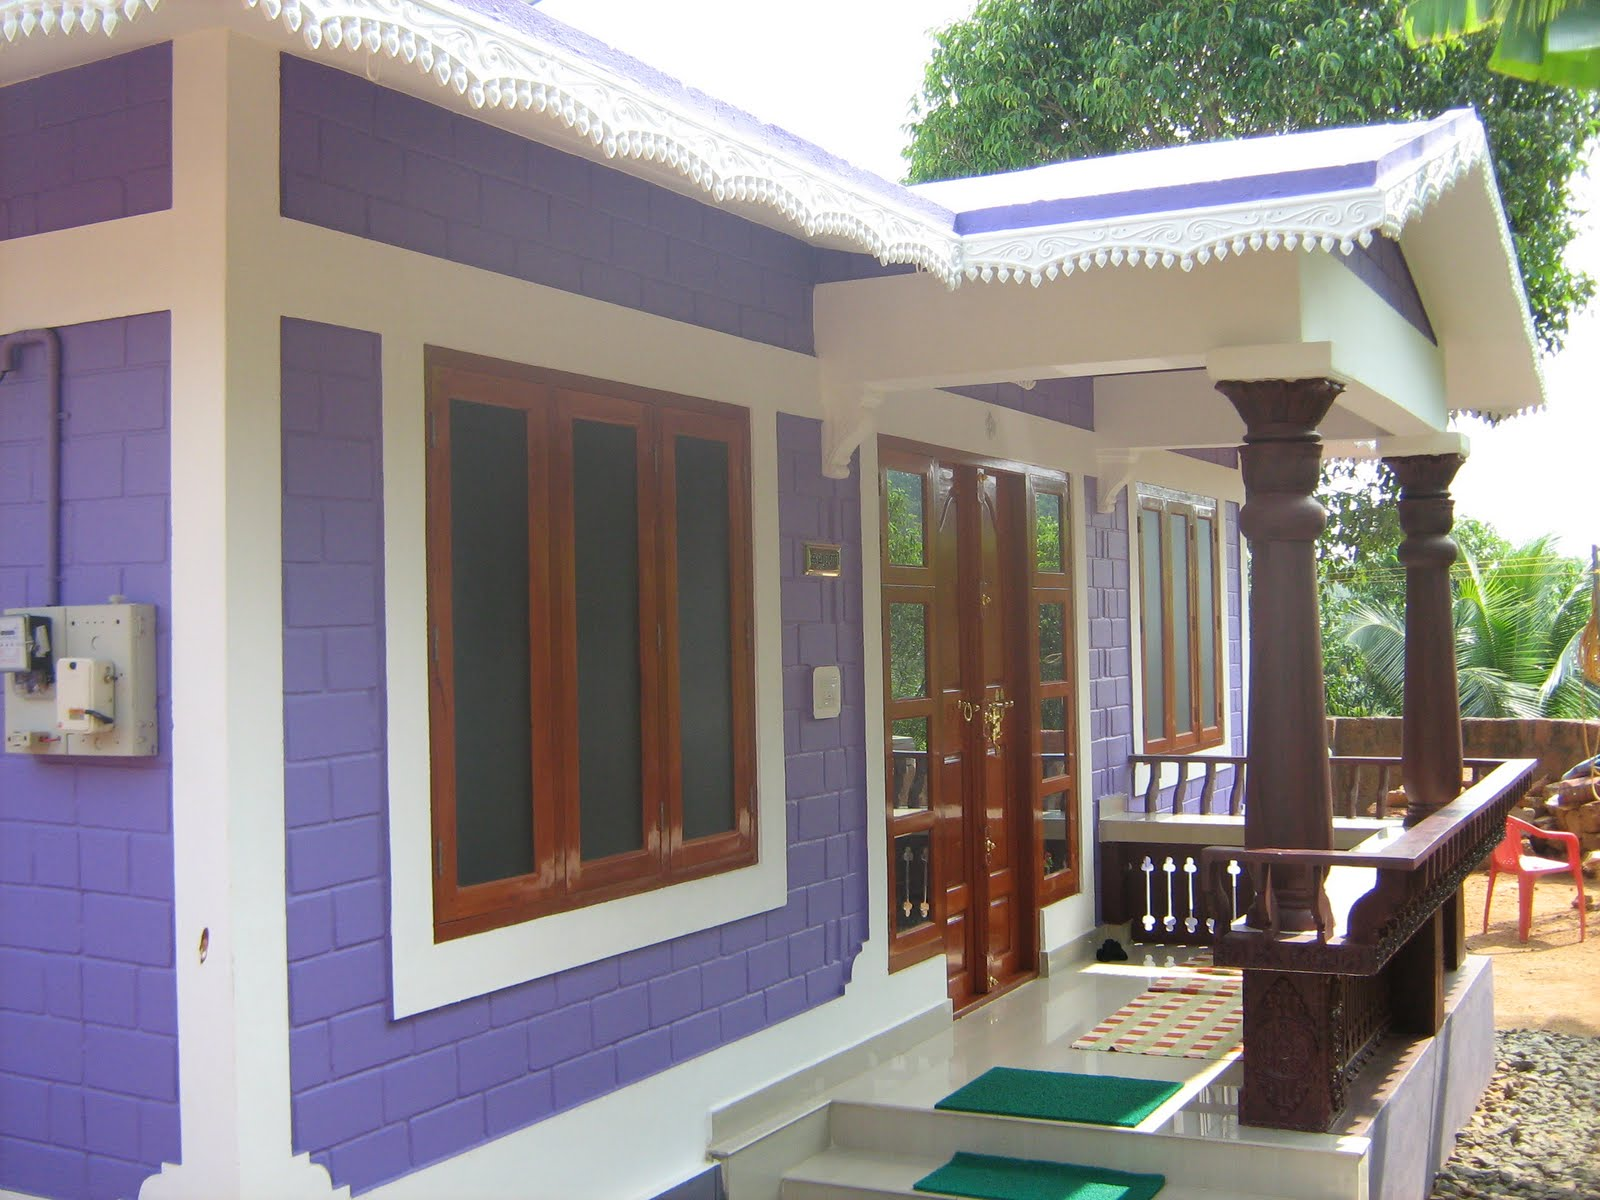 house designs of kerala with in 25 lakh with Gallery on Home Design 800 Sq Ft also Article4790297 additionally Gallery besides Gs Arch Creations as well 1062 Sqft 3 Bedroom Low Budget House.